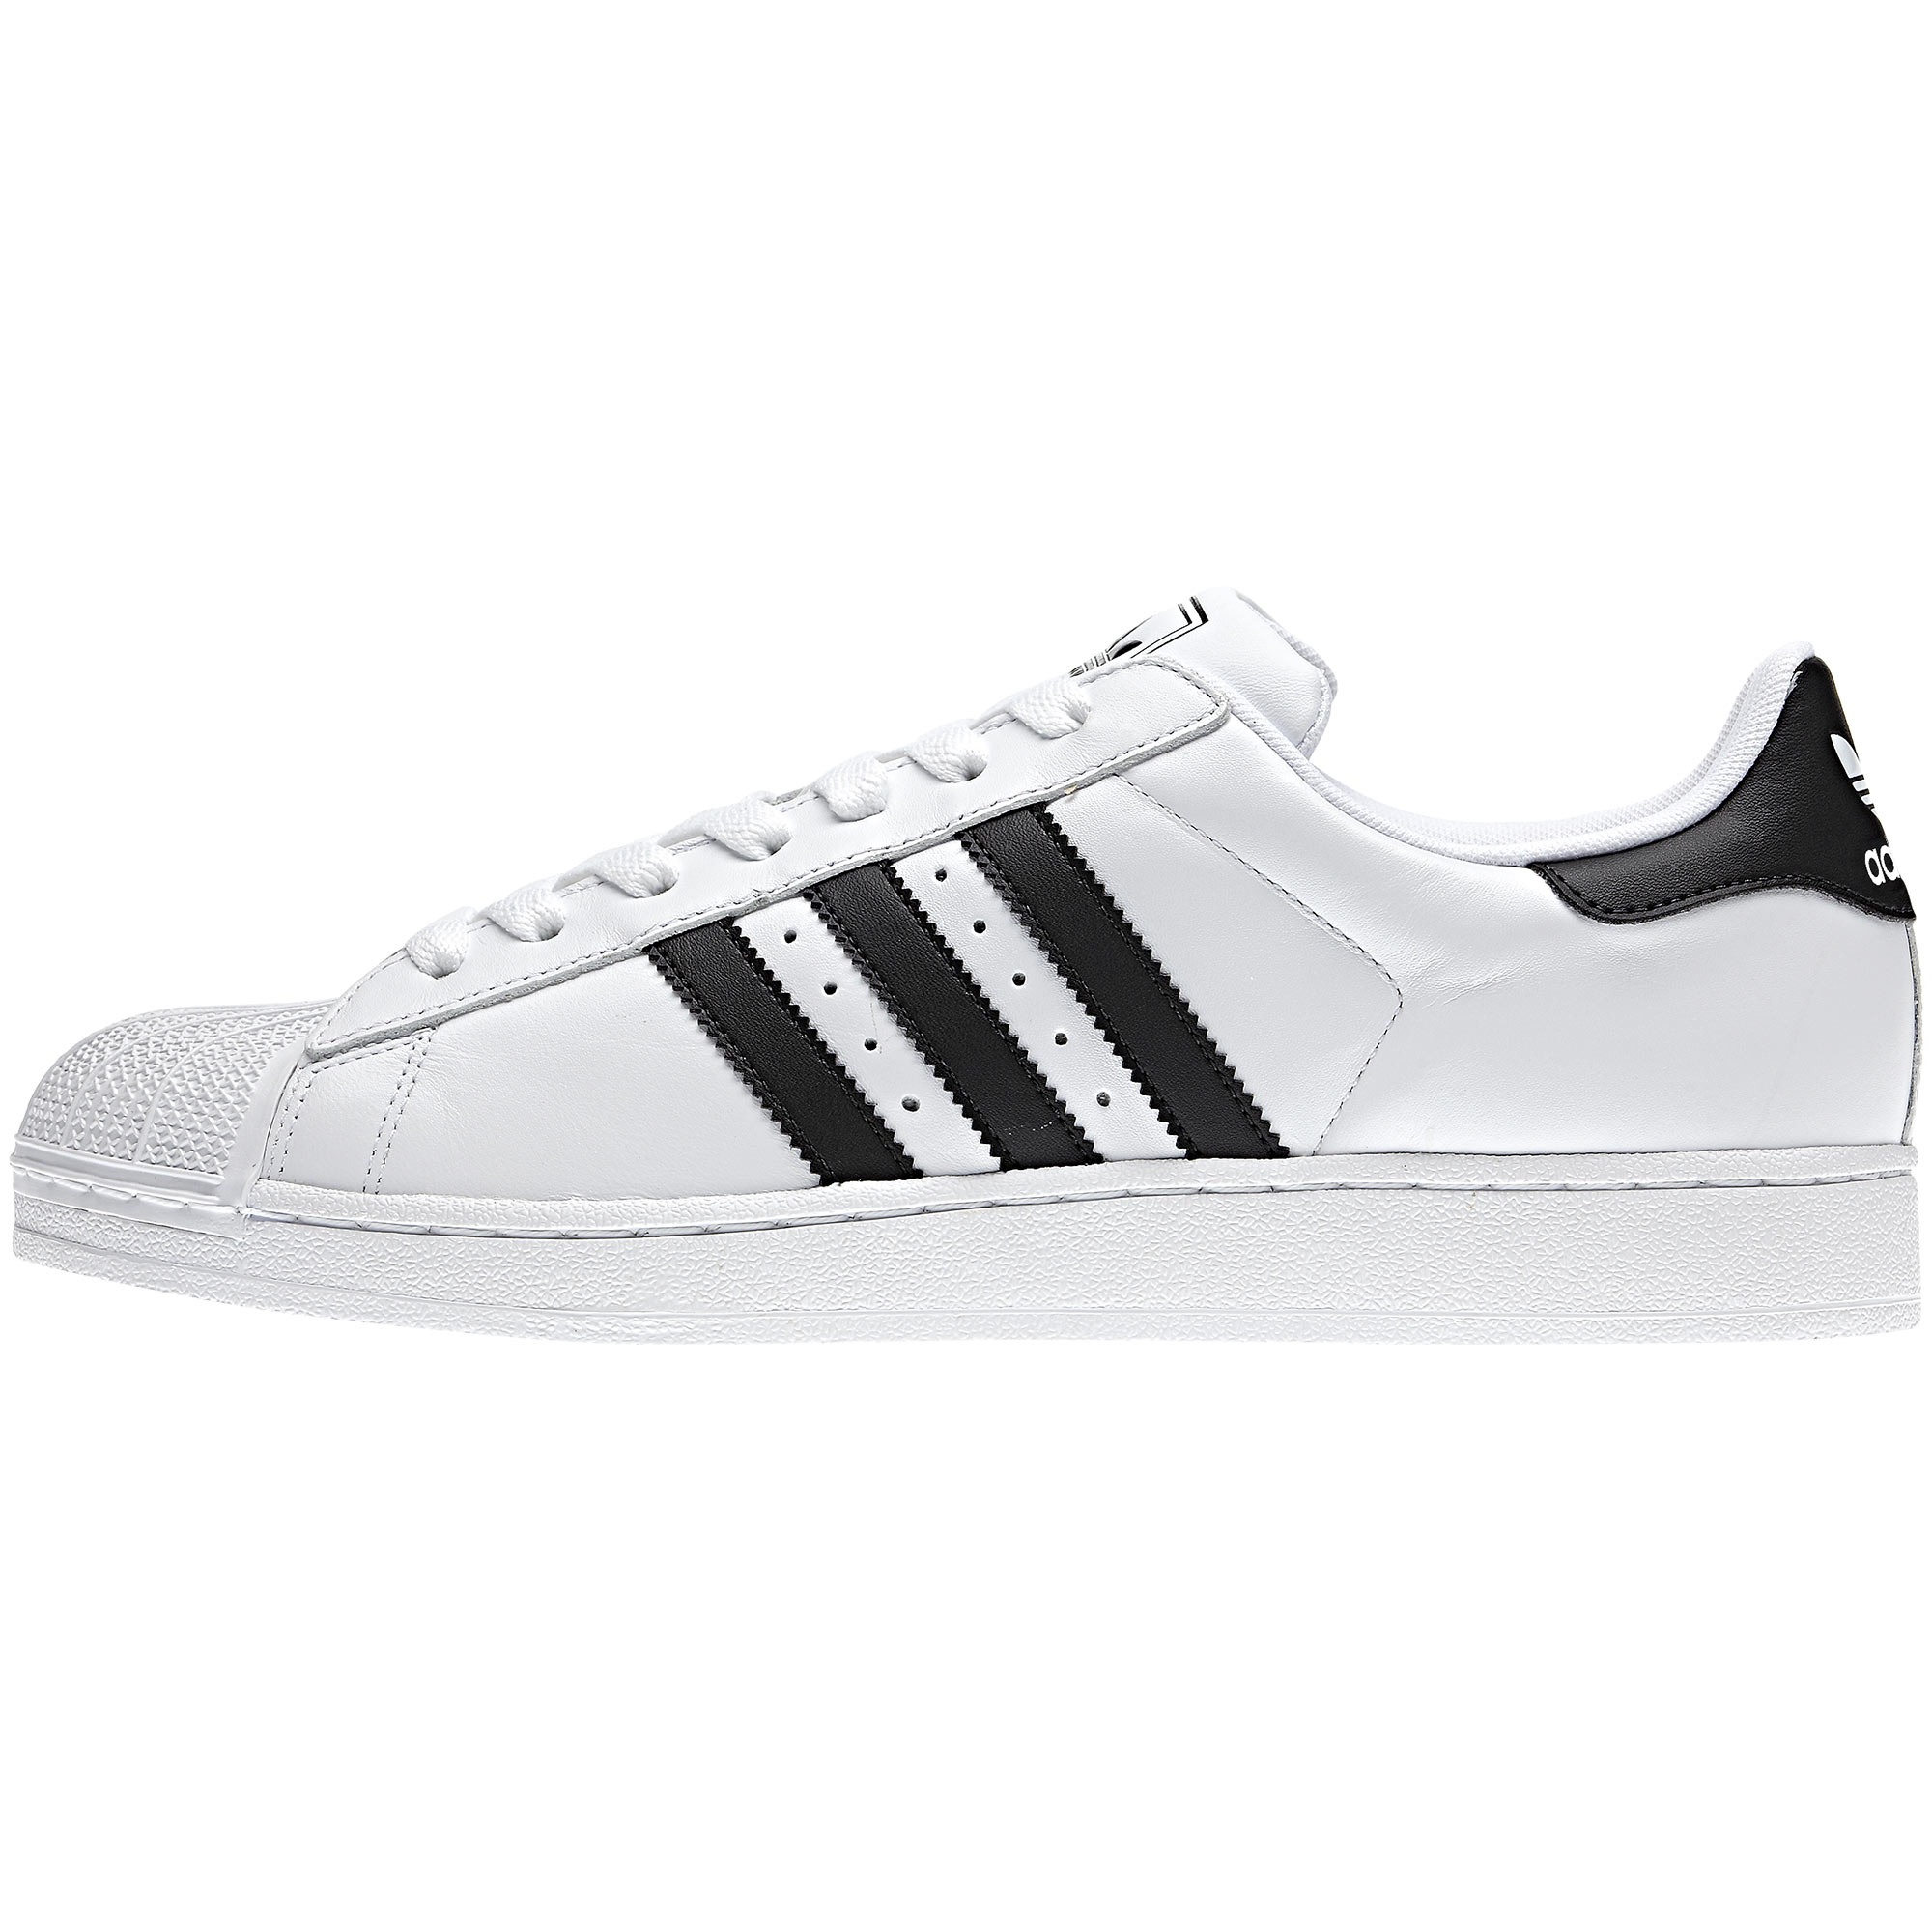 Kids Cheap Adidas Superstar Shoes